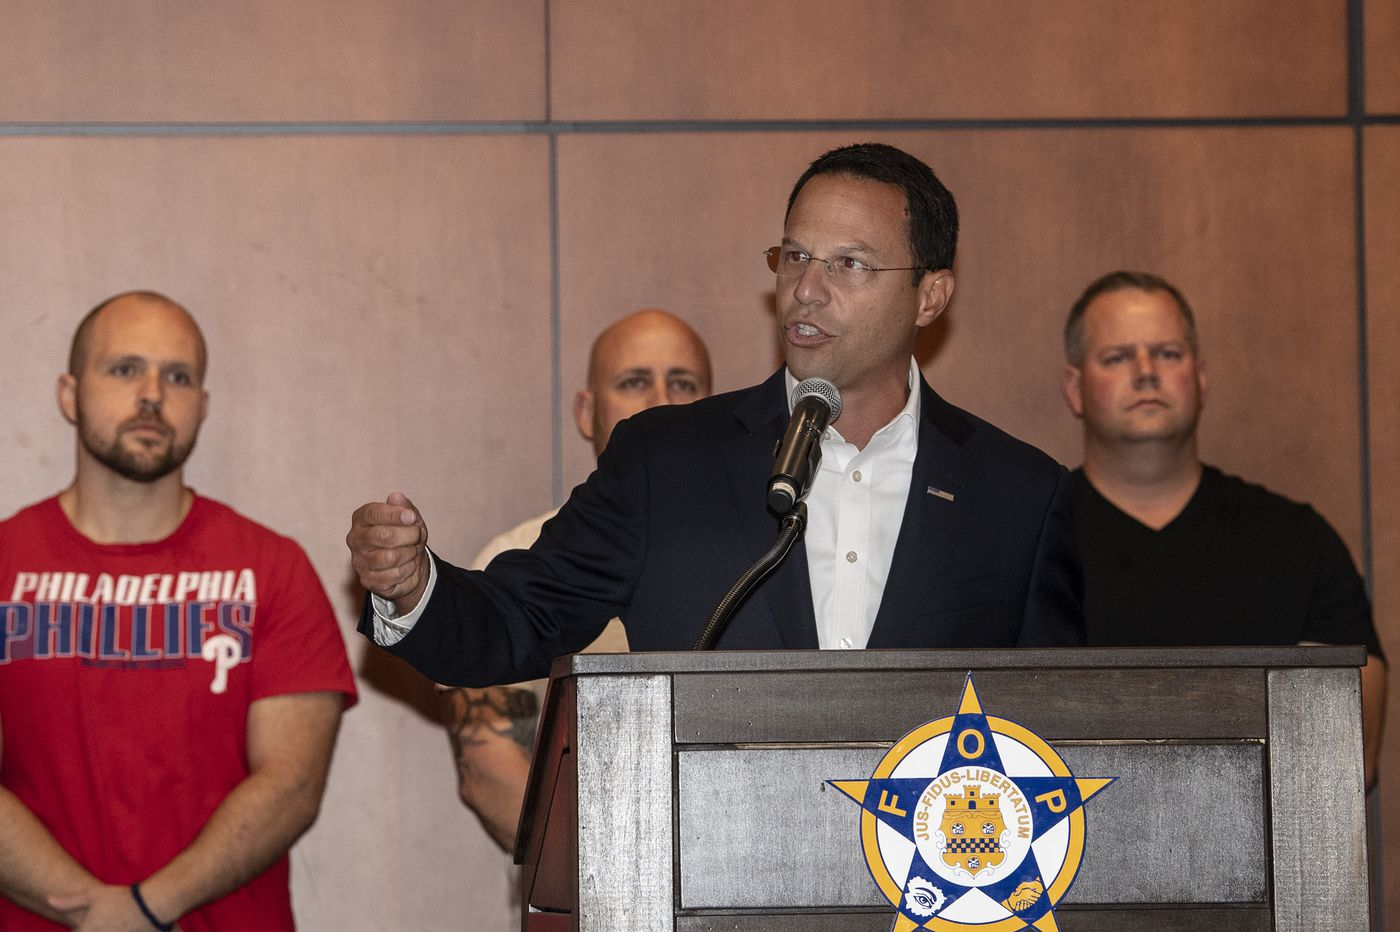 Will AG Shapiro's ties to FOP sink his hopes of becoming governor?   Will Bunch Newsletter